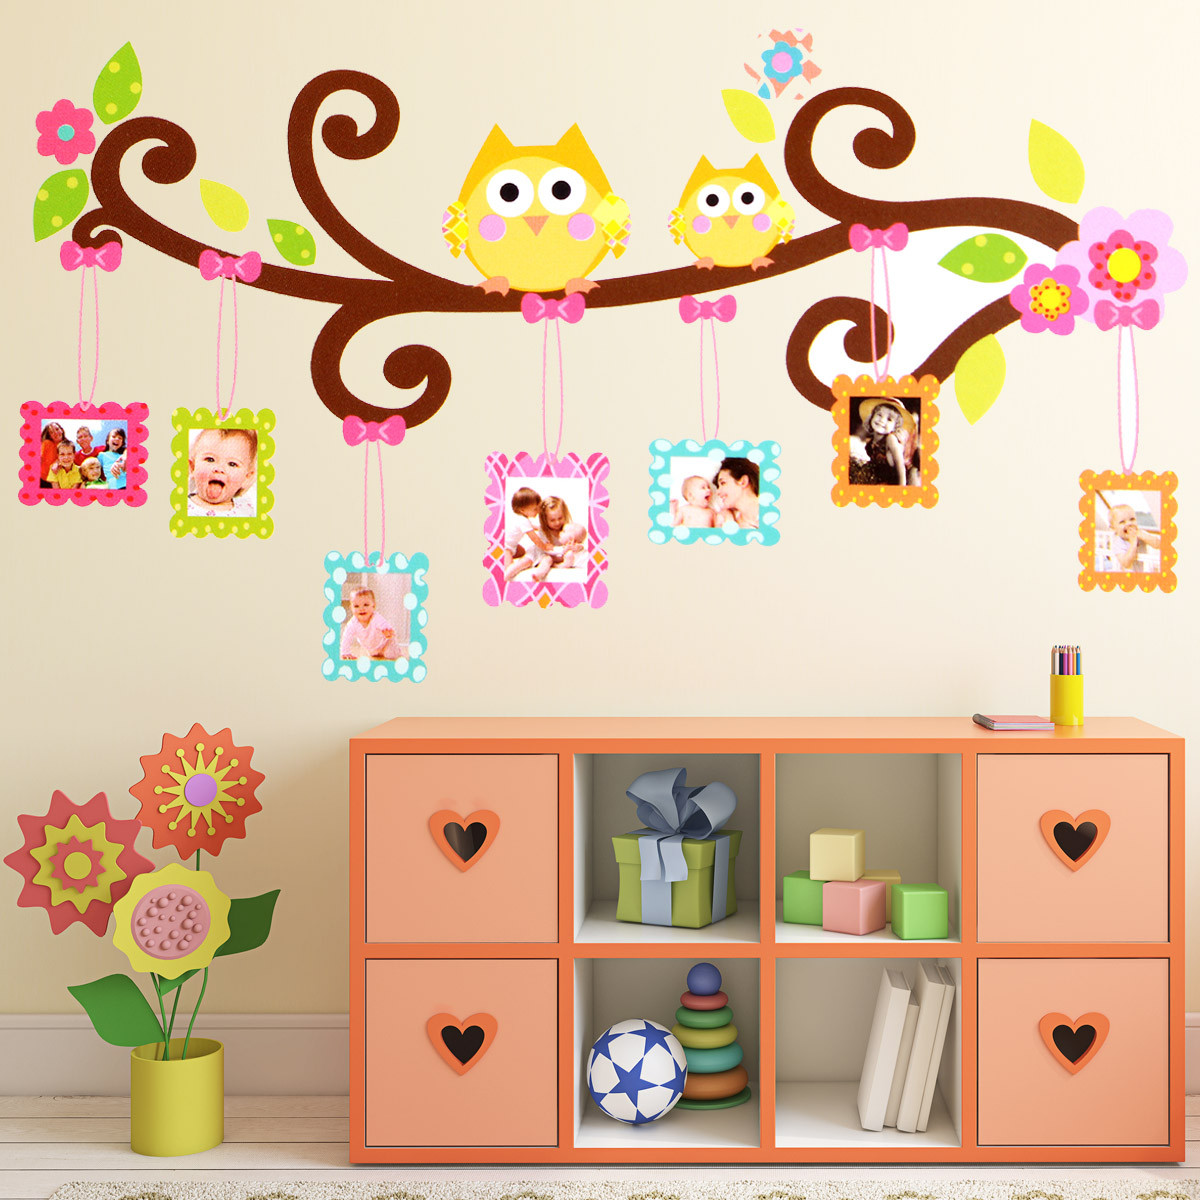 Owl Flower Tree Photo Frame Wall Sticker Vinyl Art Decal Kids Room Nursery Decor